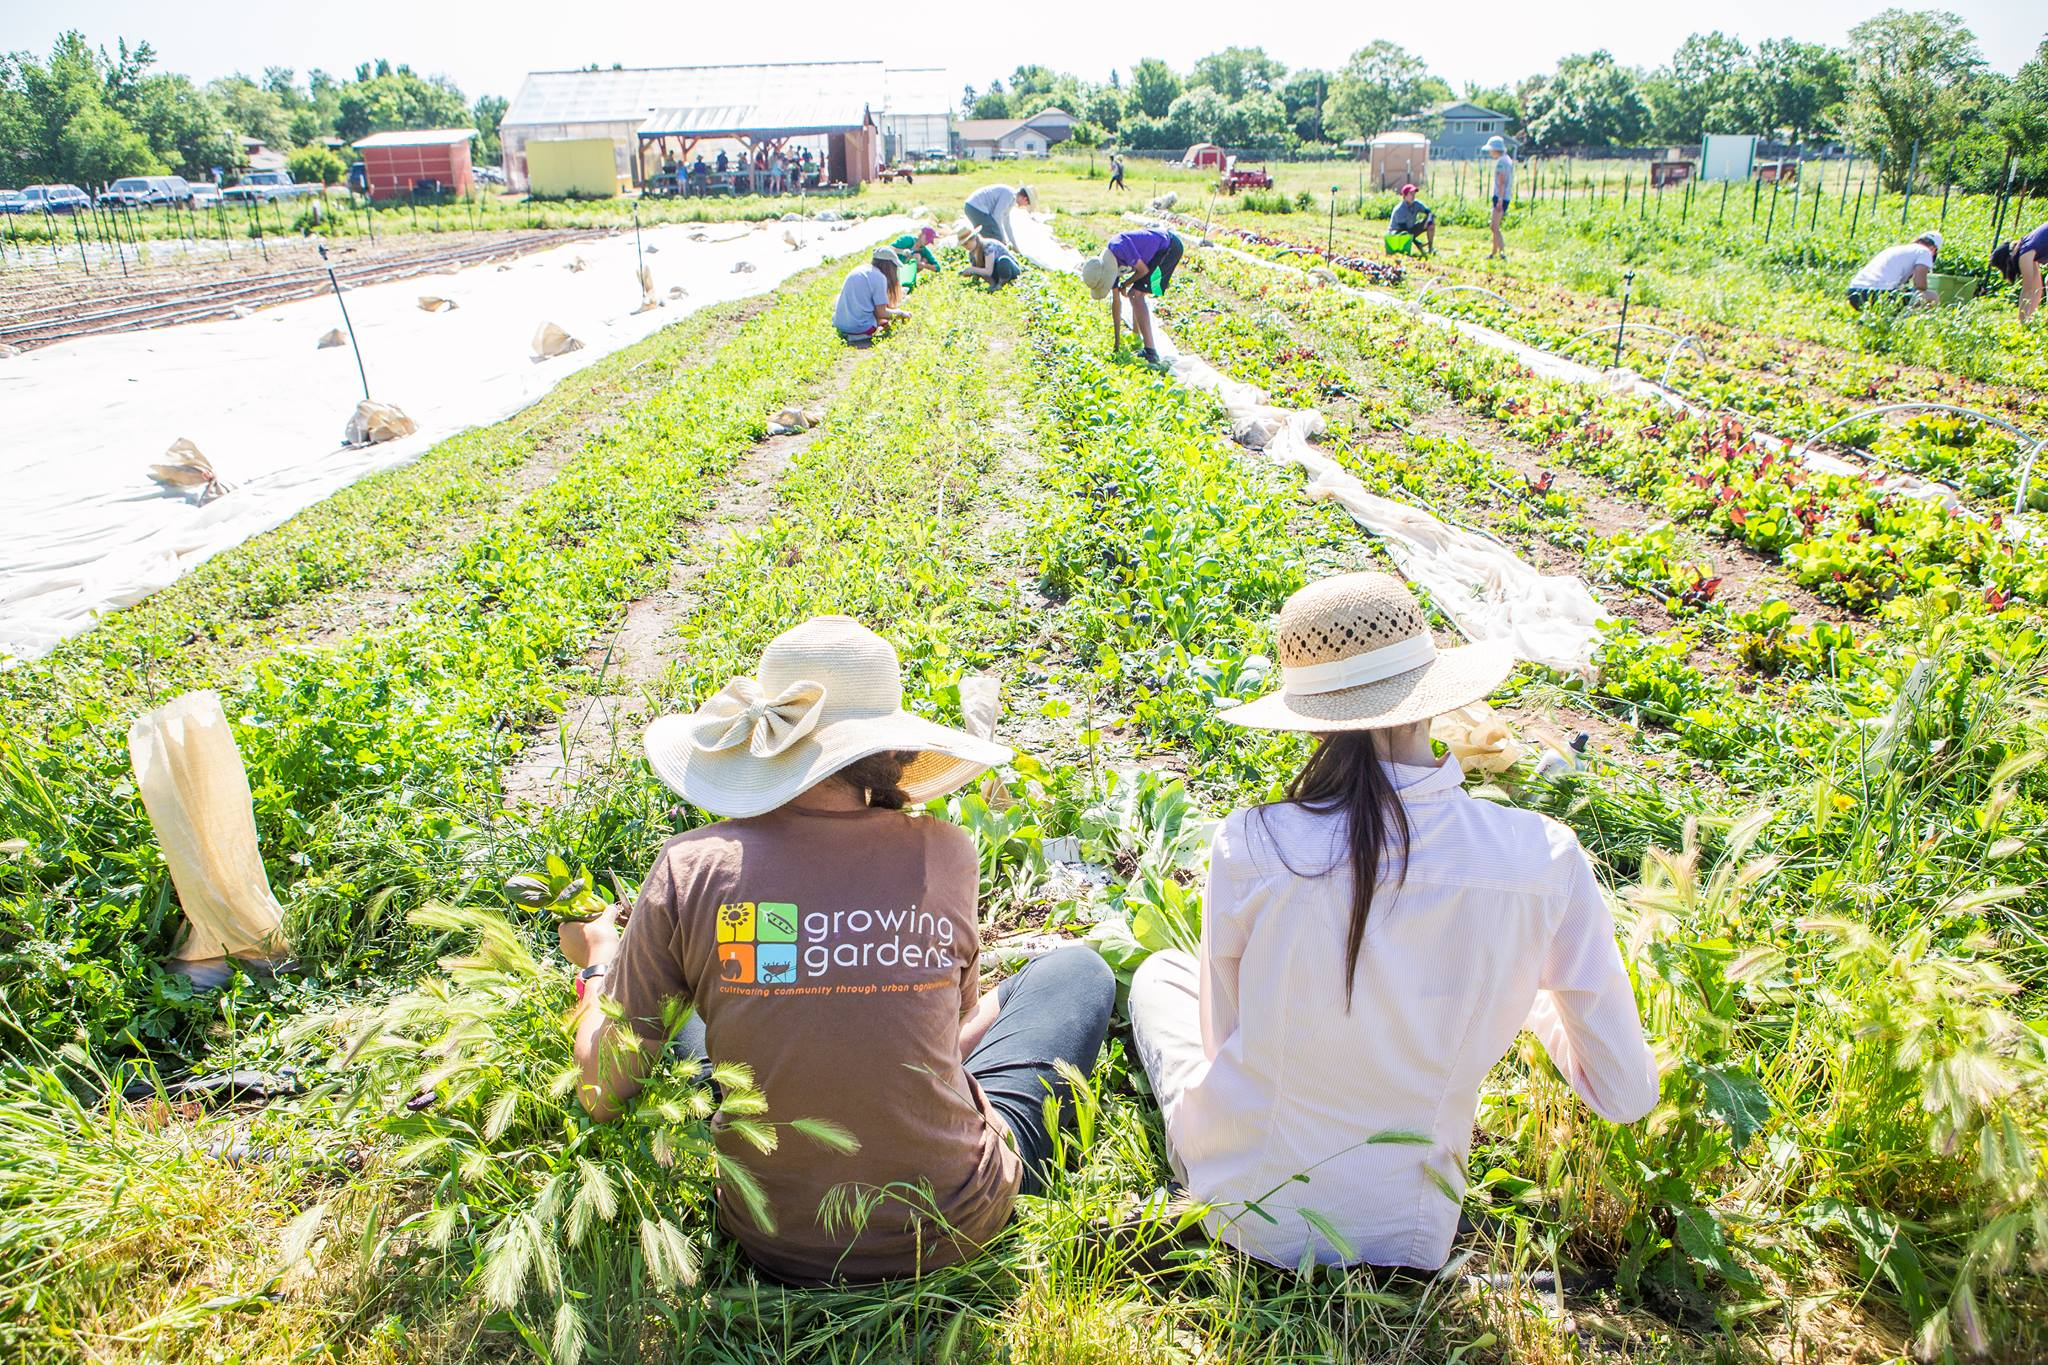 Our Cultiva Youth Project is an organic farm CSA cultivated by teens near downtown Boulder!